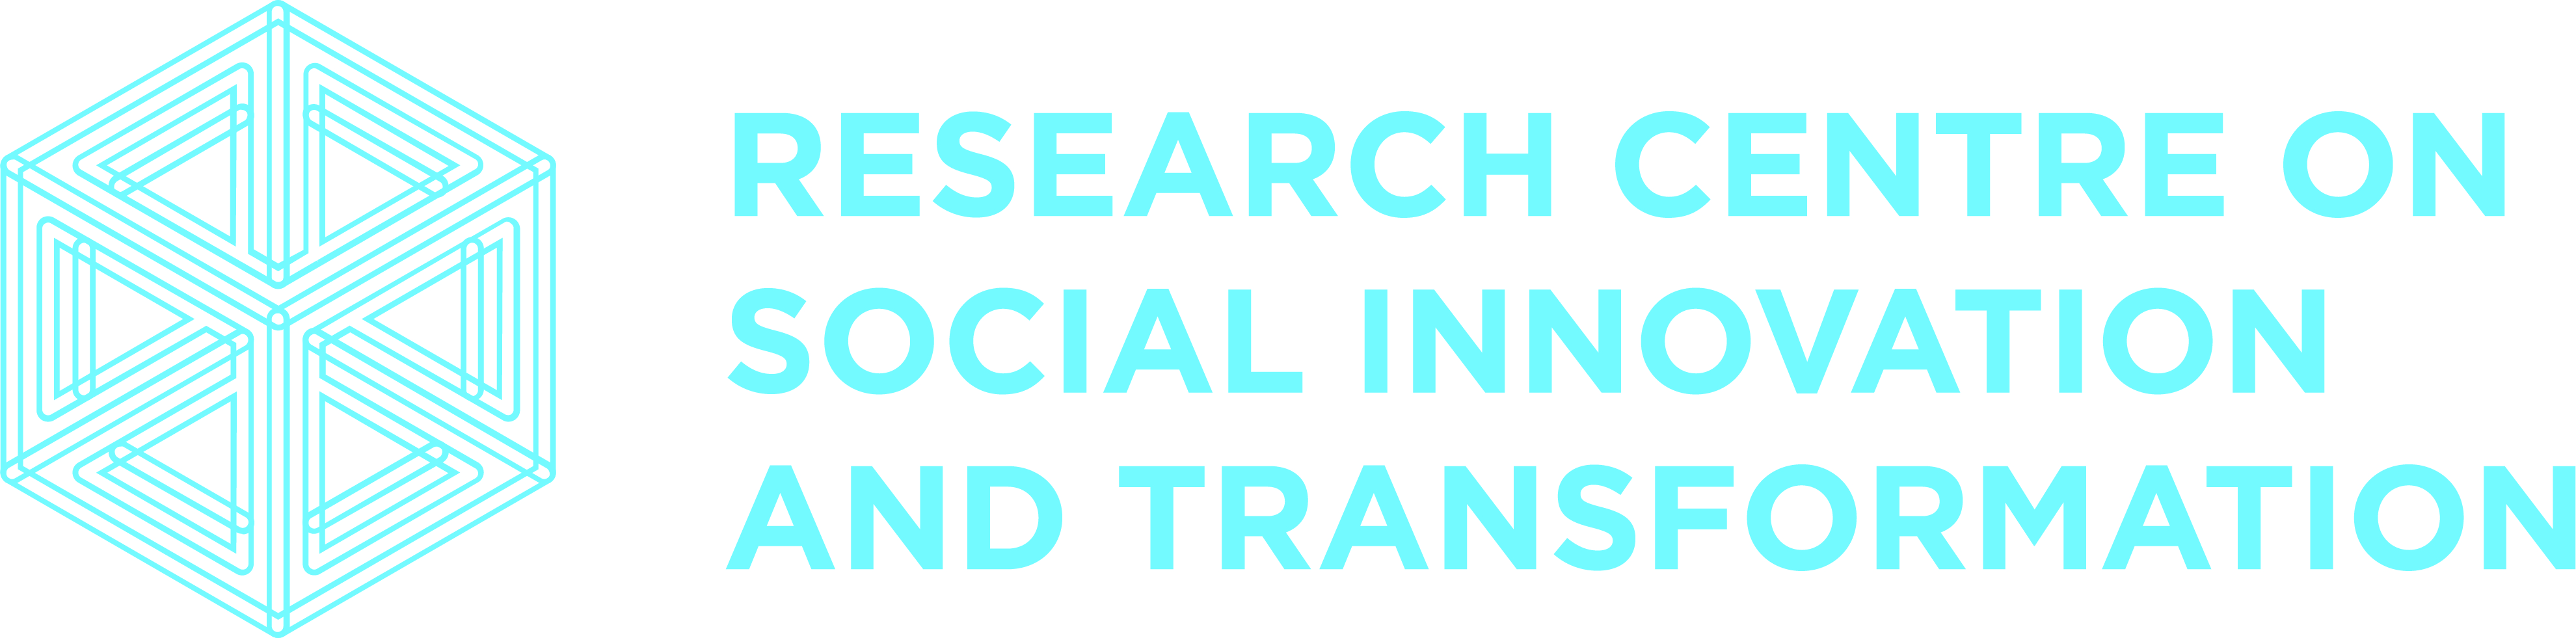 Logo, light blue, cubic form made of multiple lines. Name of research group underneath